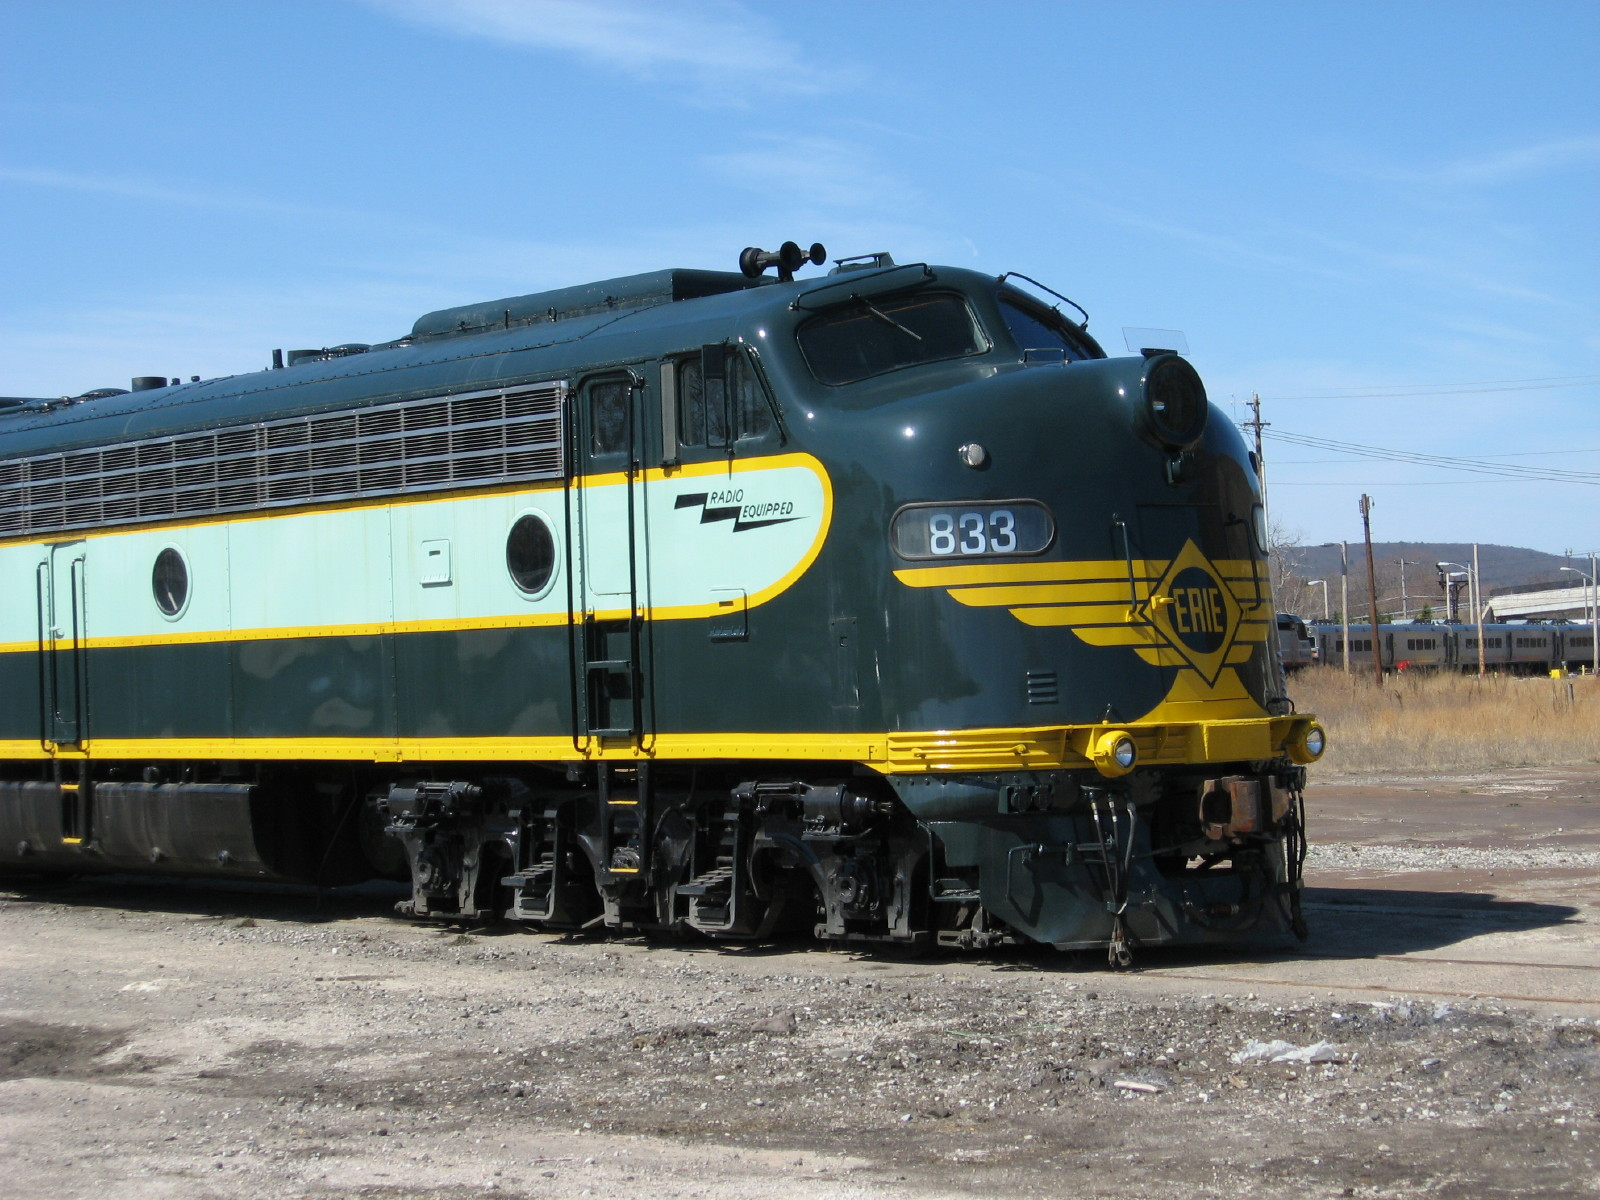 Download Classic Trains wallpaper old erie train 1600x1200